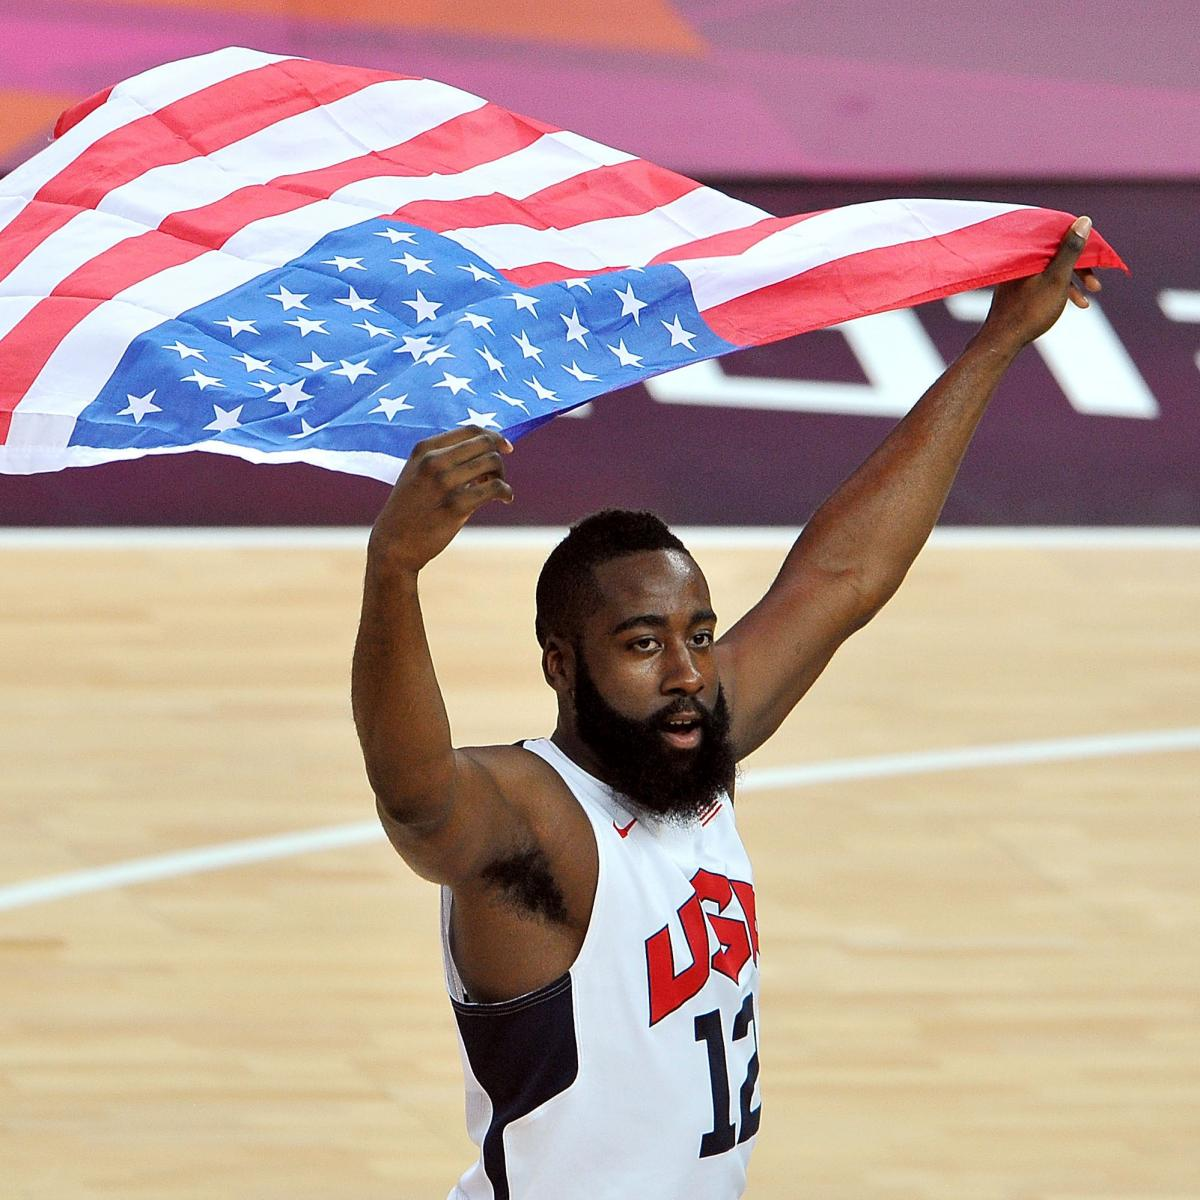 James Harden Injury Report: James Harden Will Not Compete For Team USA At 2016 Rio